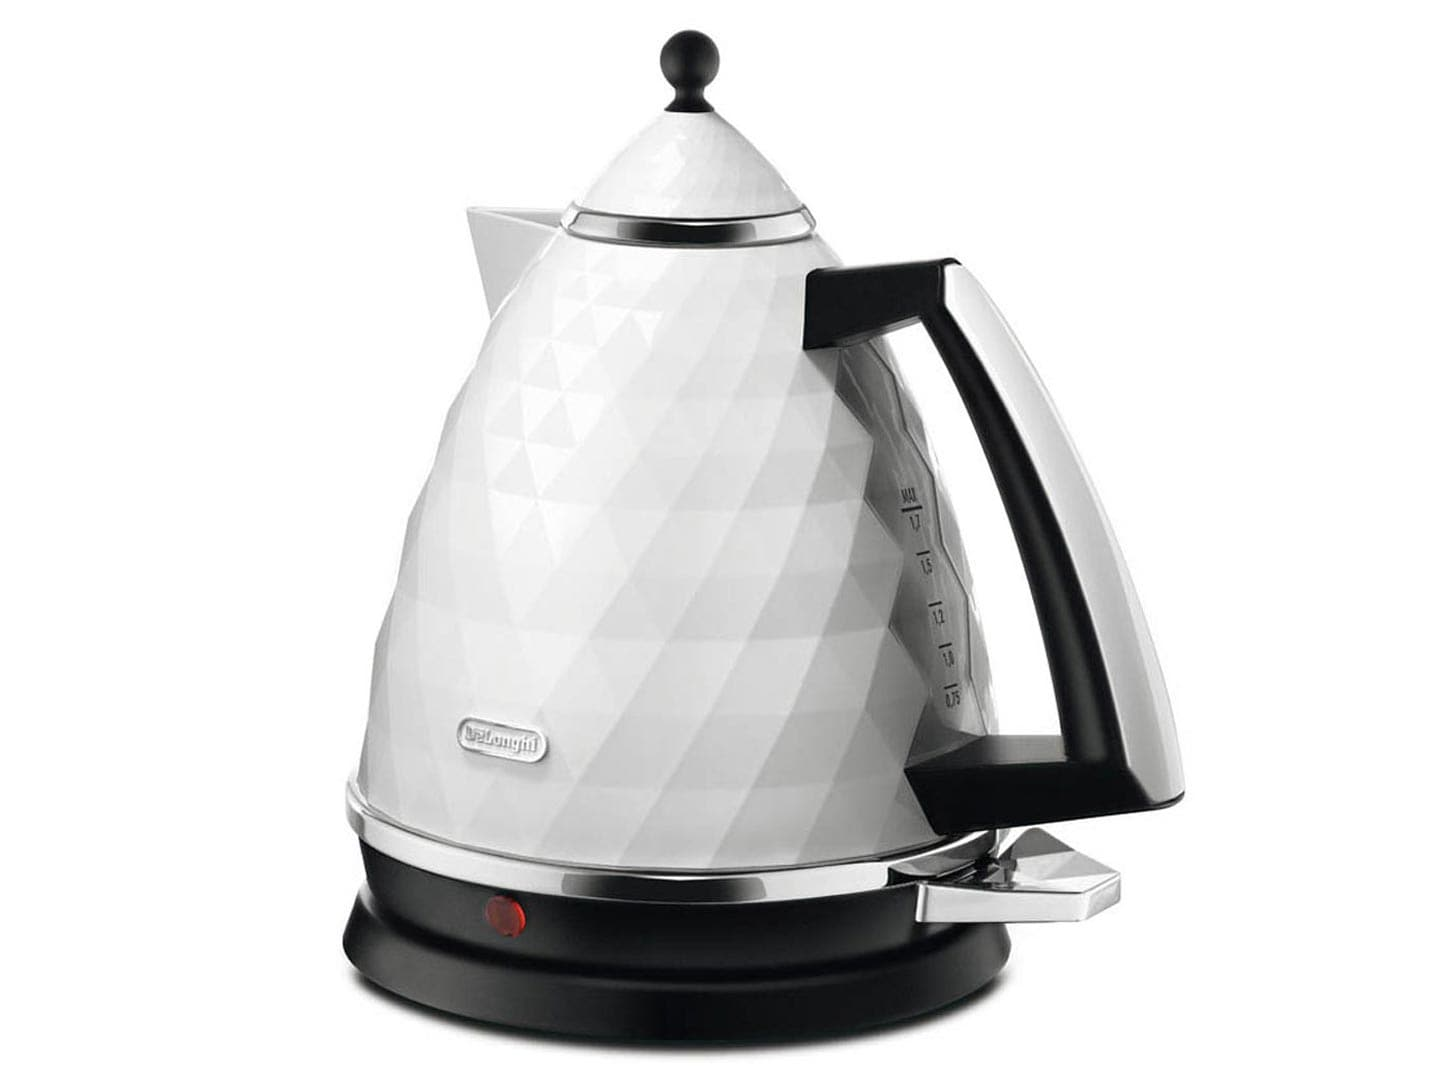 kettles from de'longhi uk - brillante kbj w